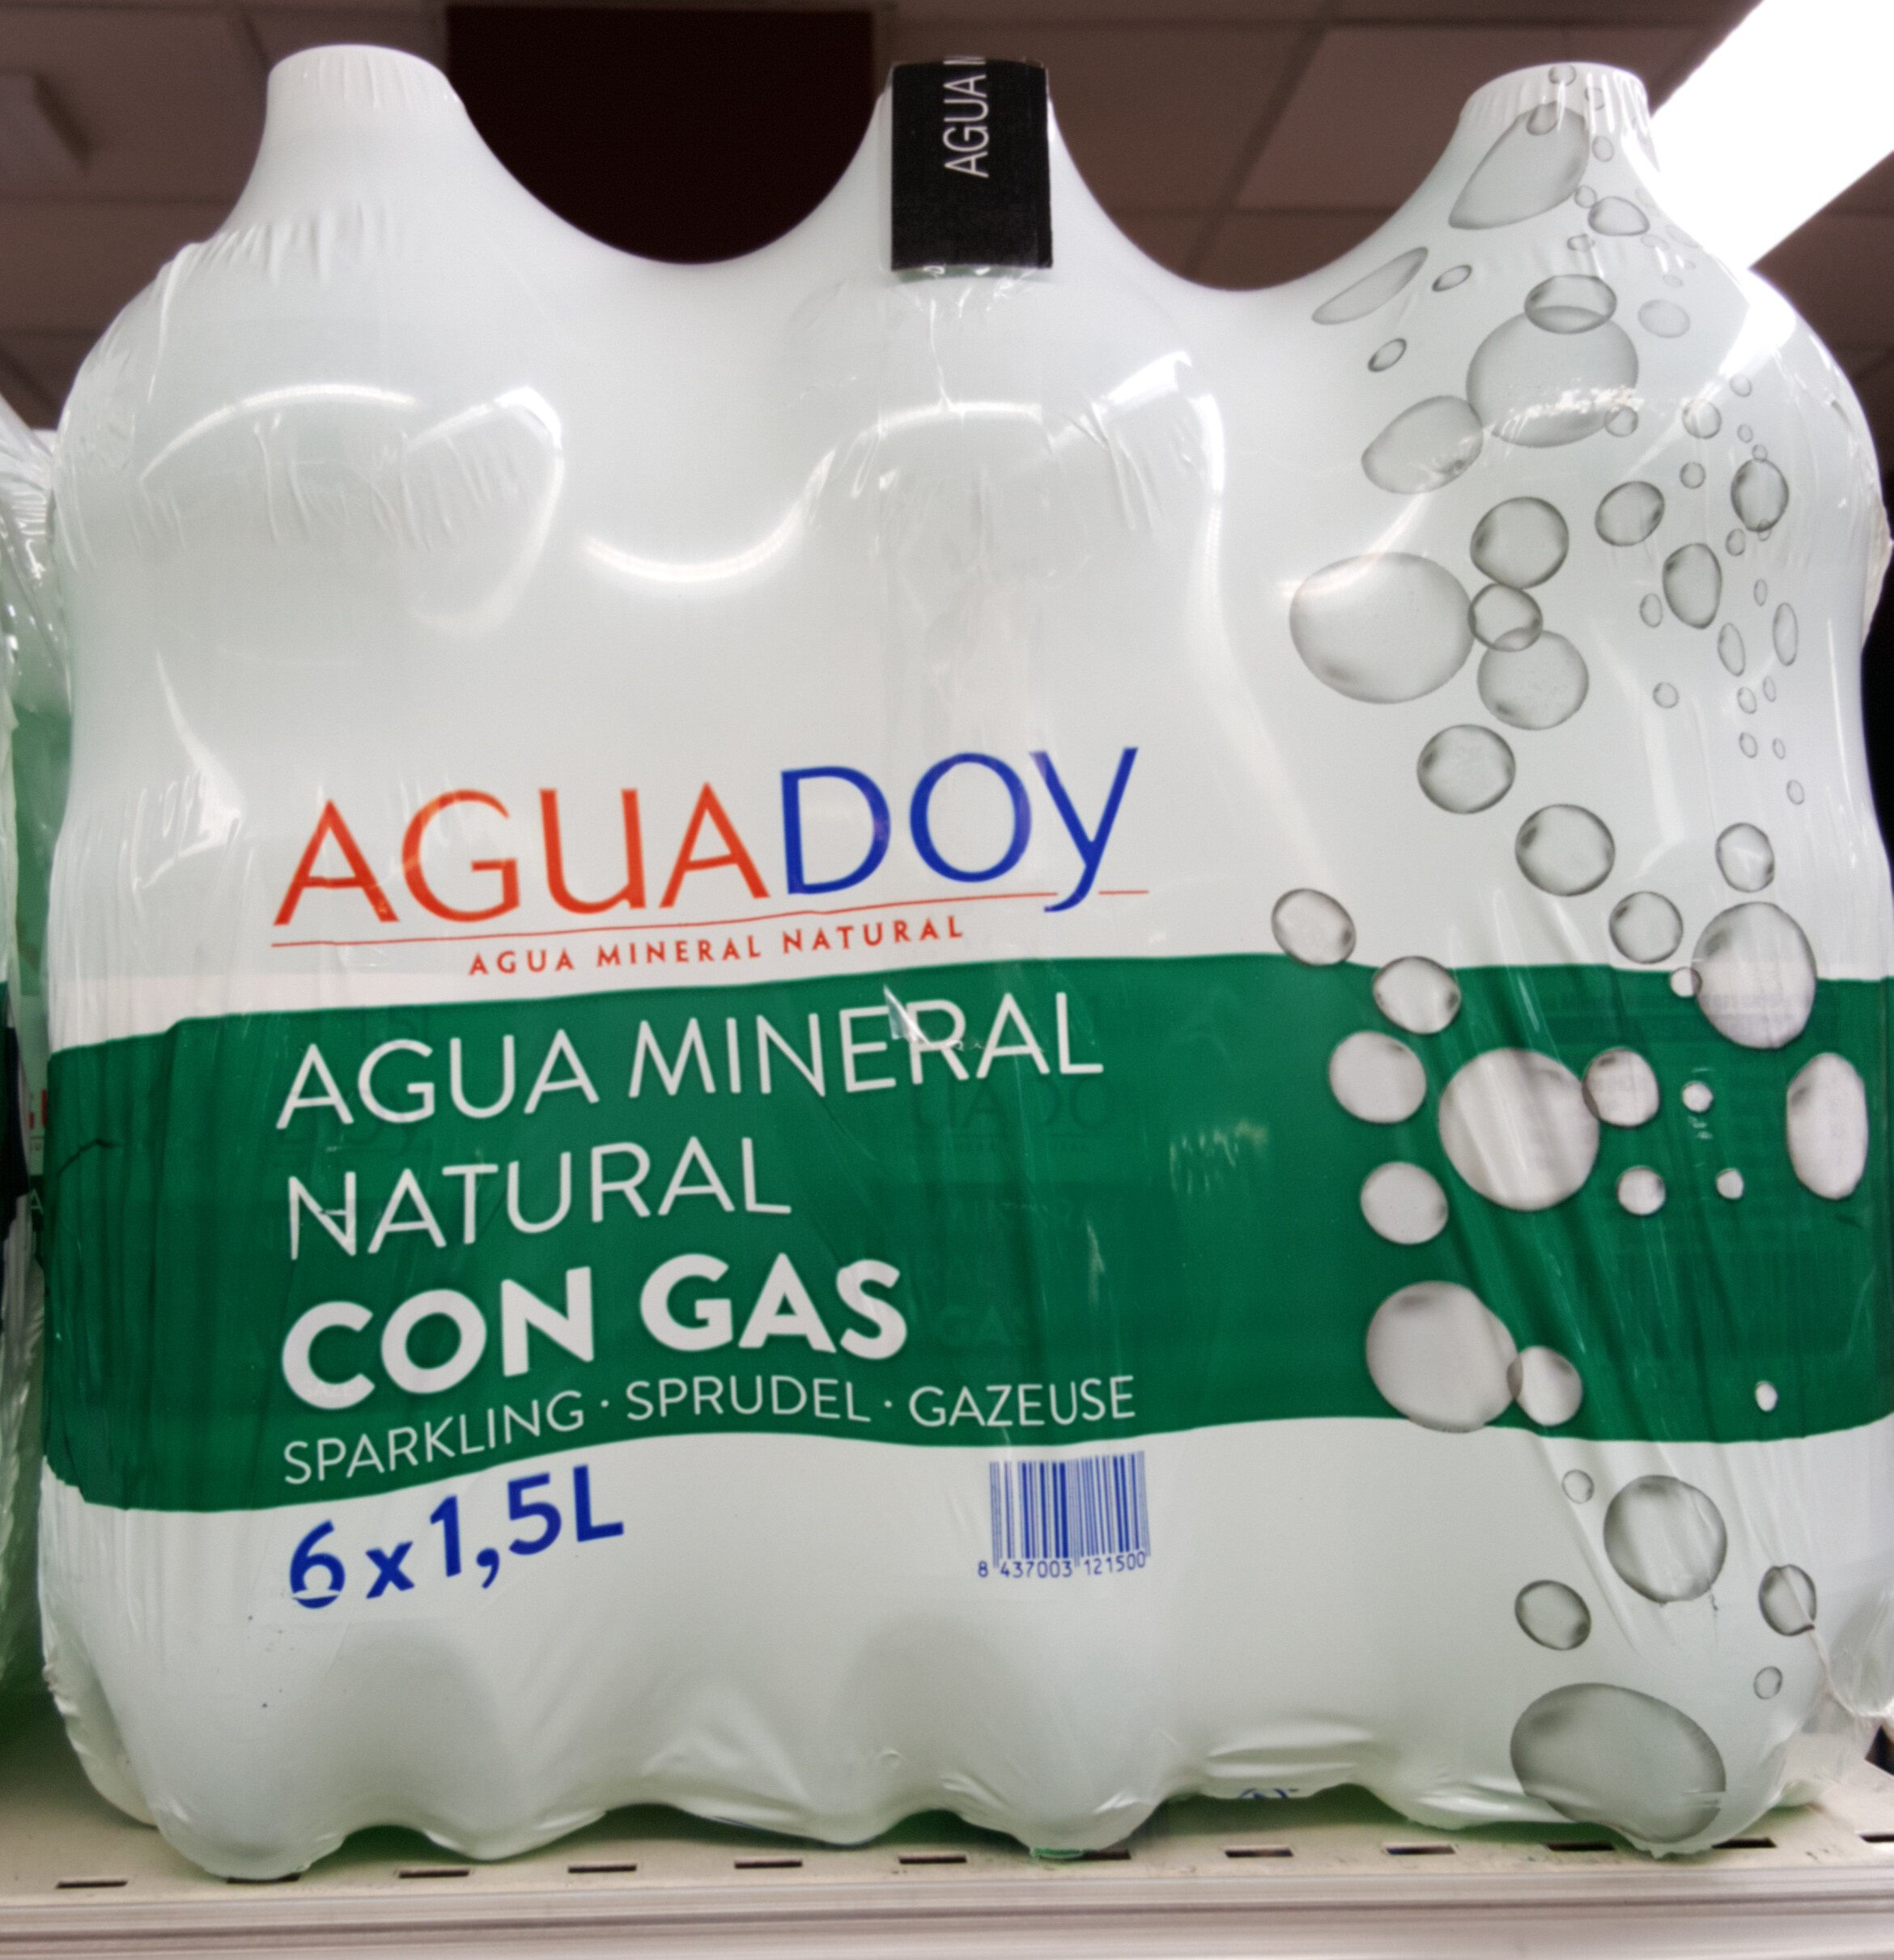 Agua con gas pack 6 - Product - en